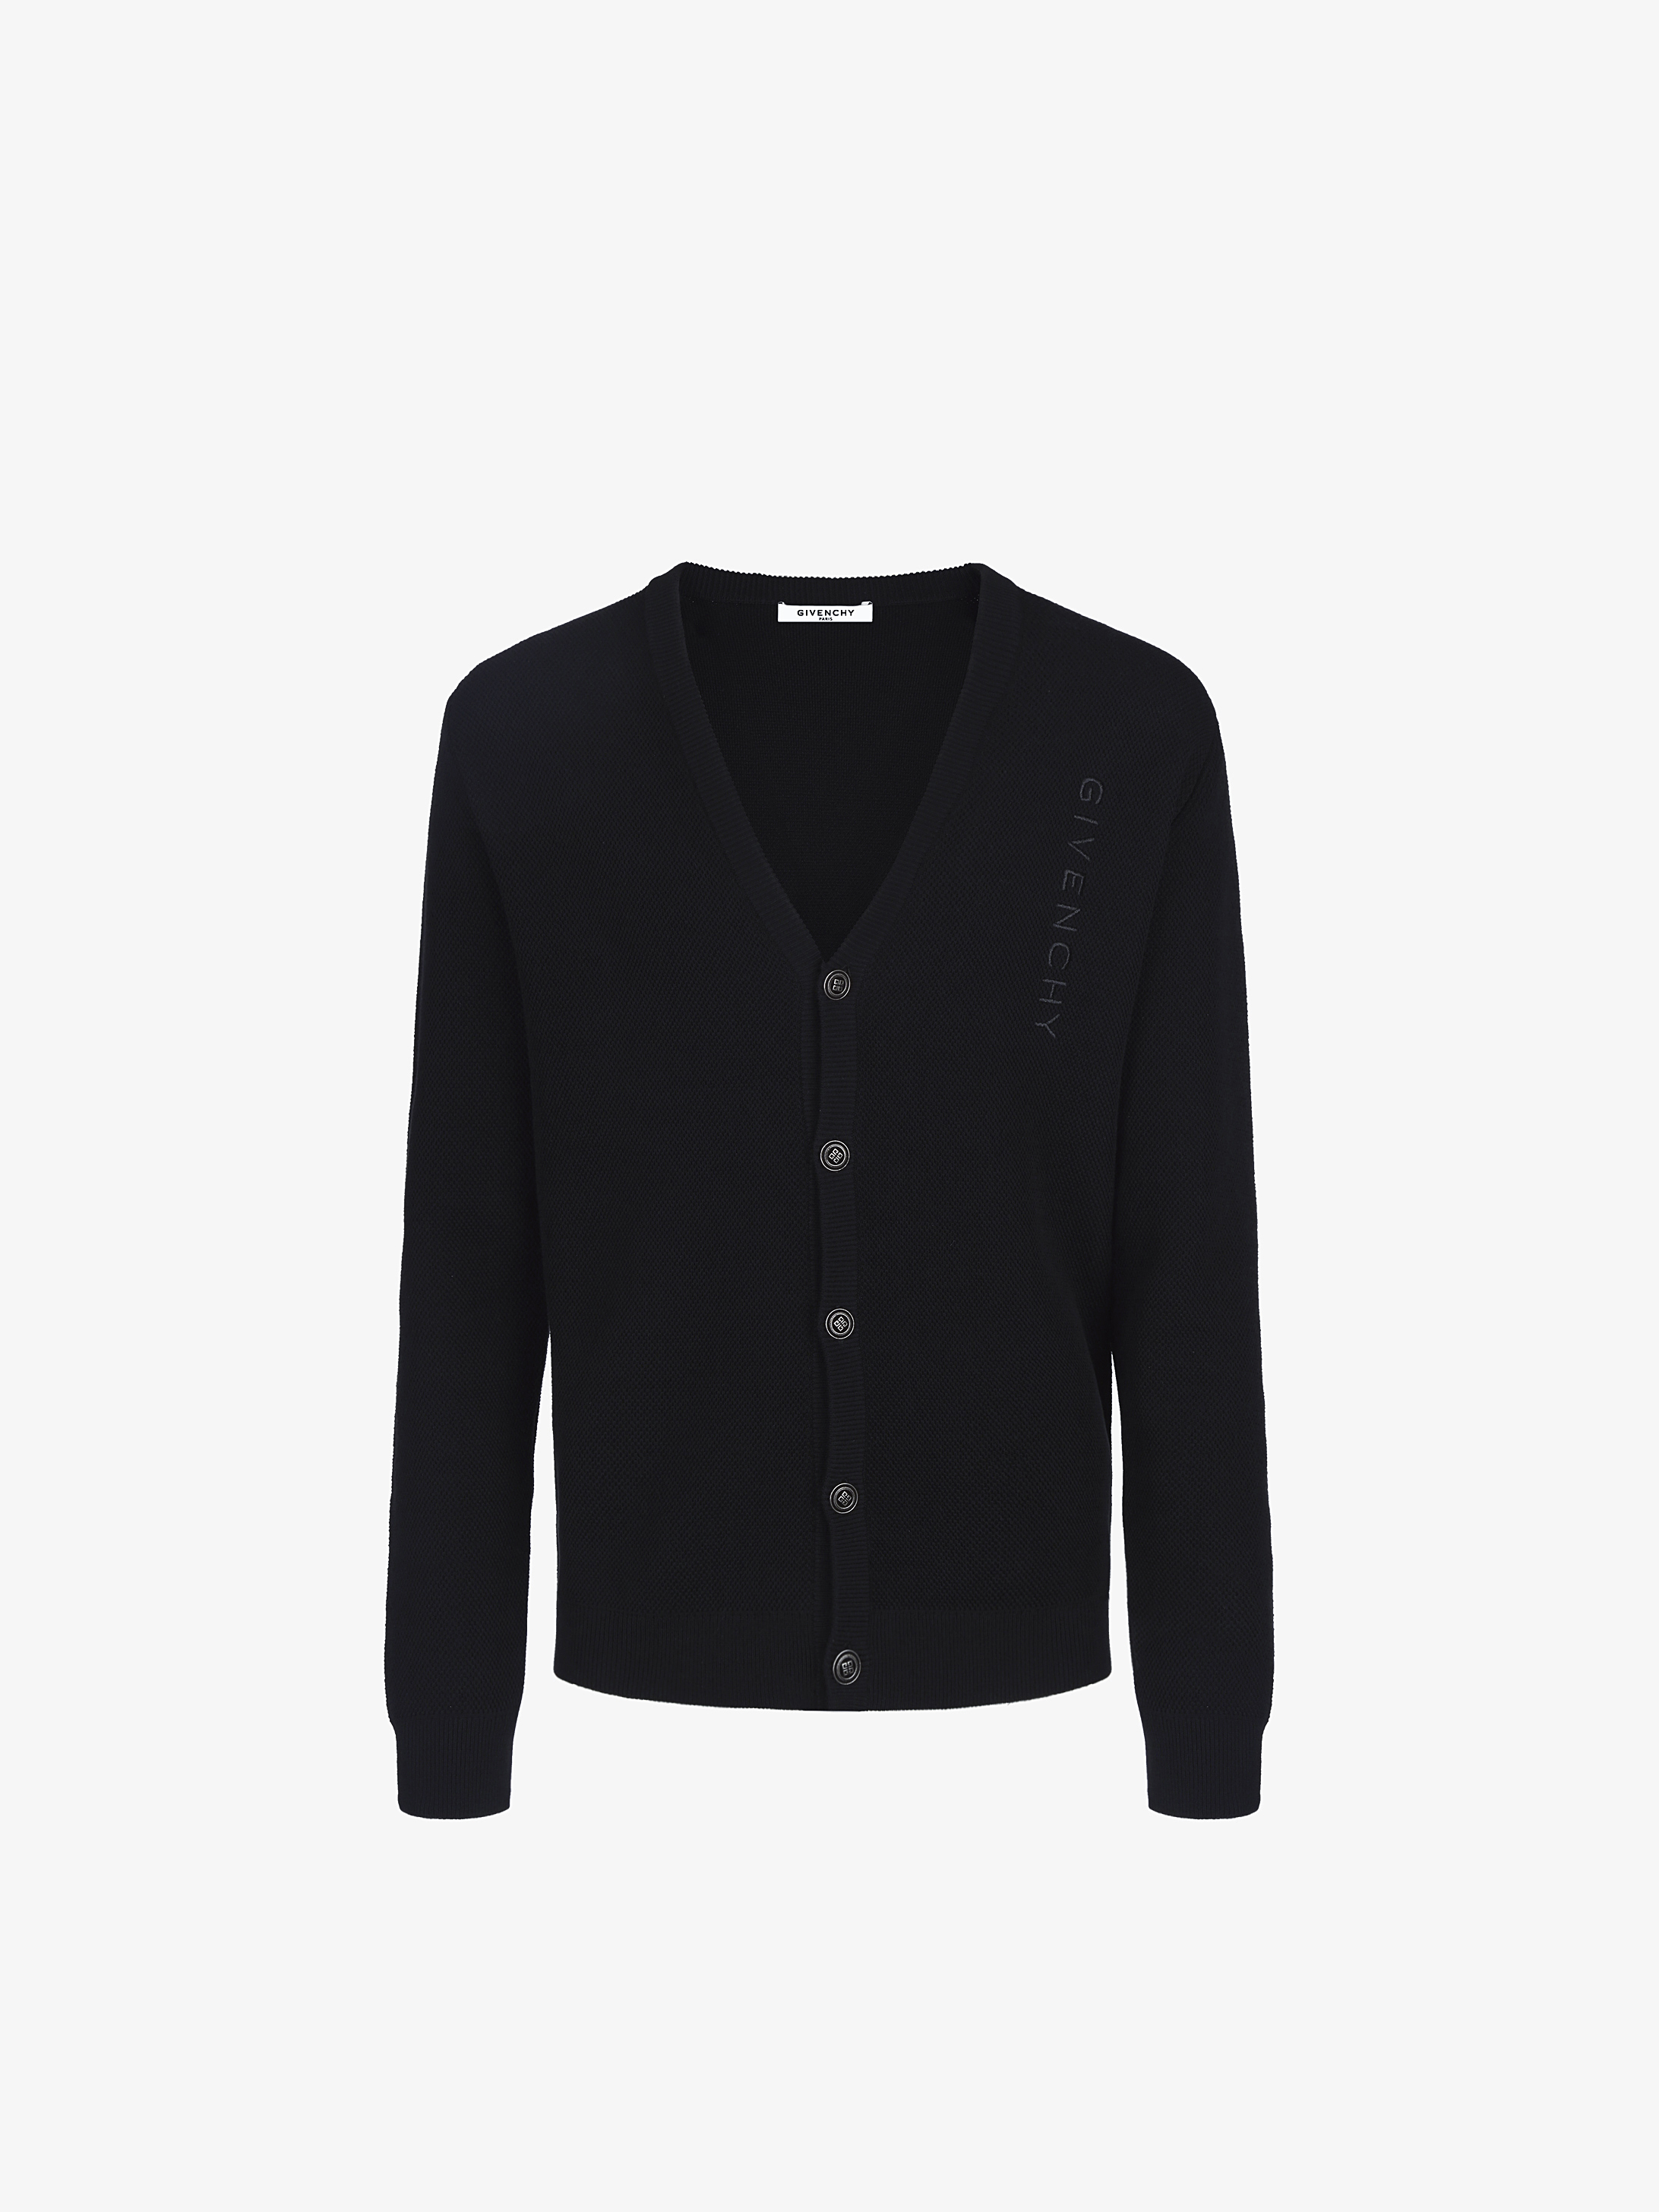 Vertical GIVENCHY cardigan with 4G buttons